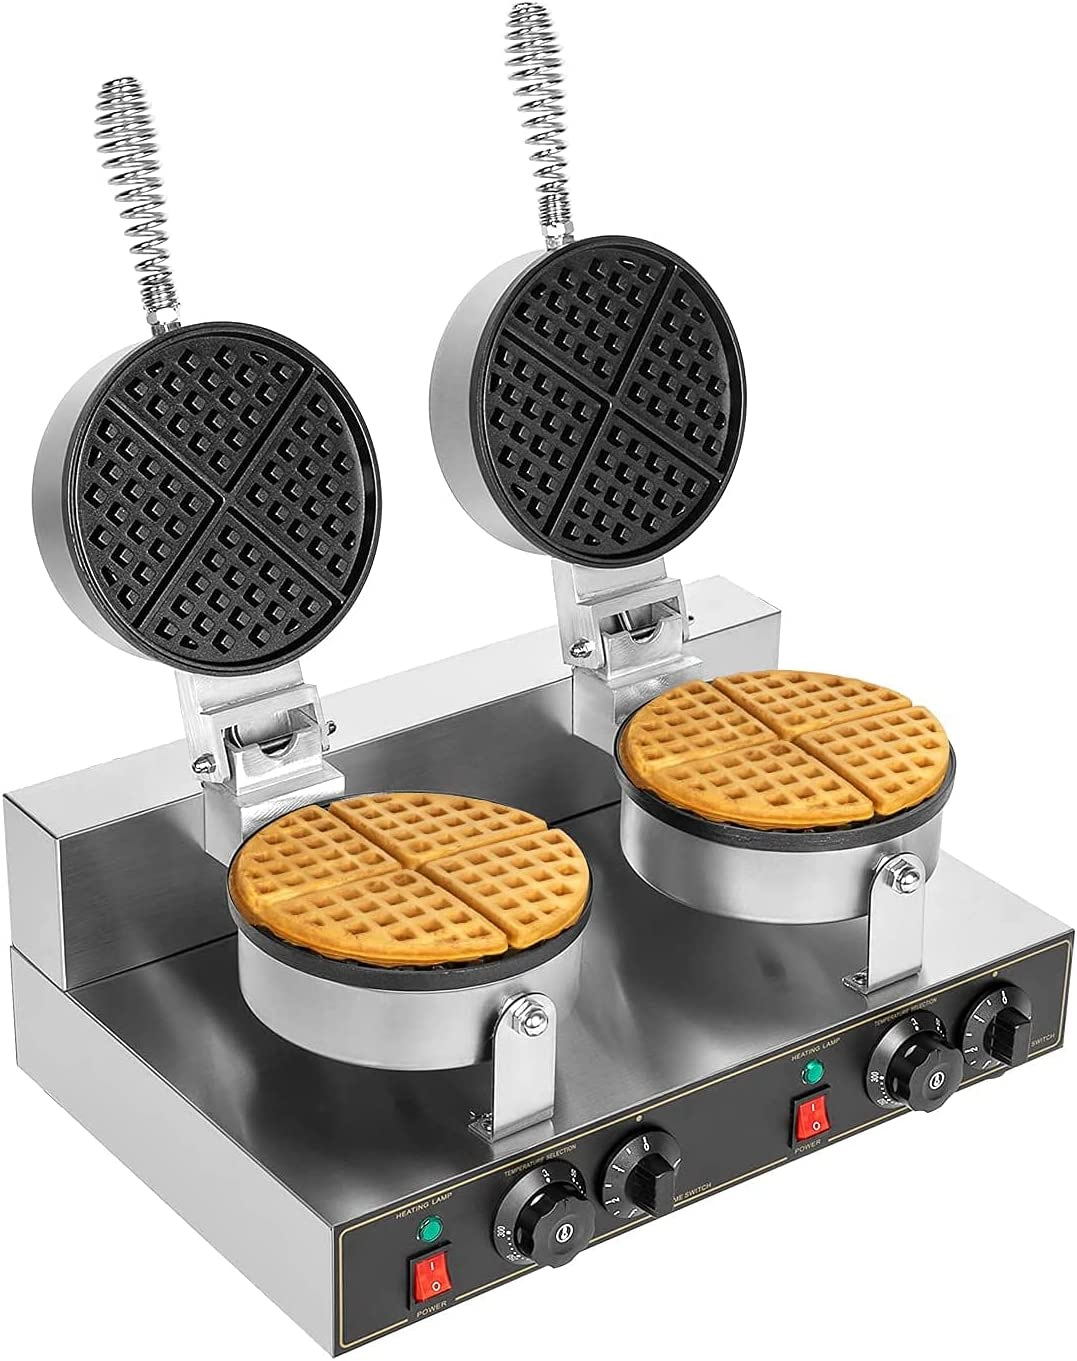 Commercial Belgian Popularity Waffle Max 63% OFF Maker Double Iron 11 Thin Round